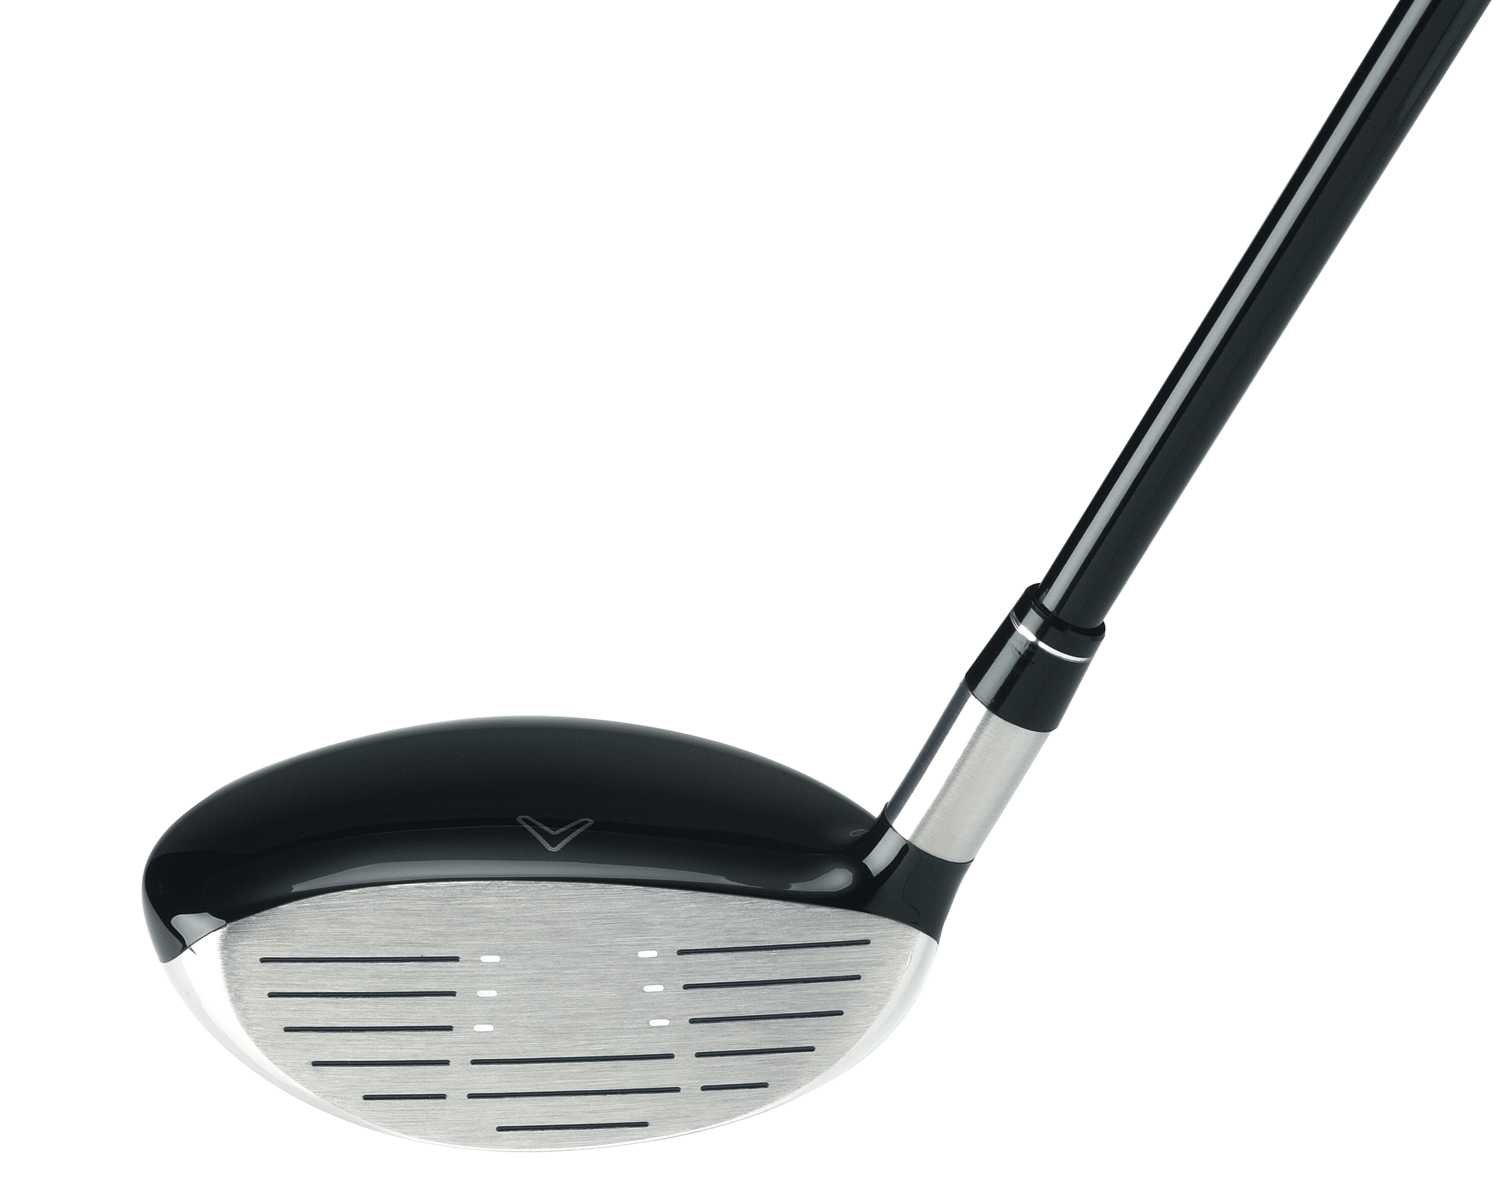 Callaway FT Fairway Wood Neutral